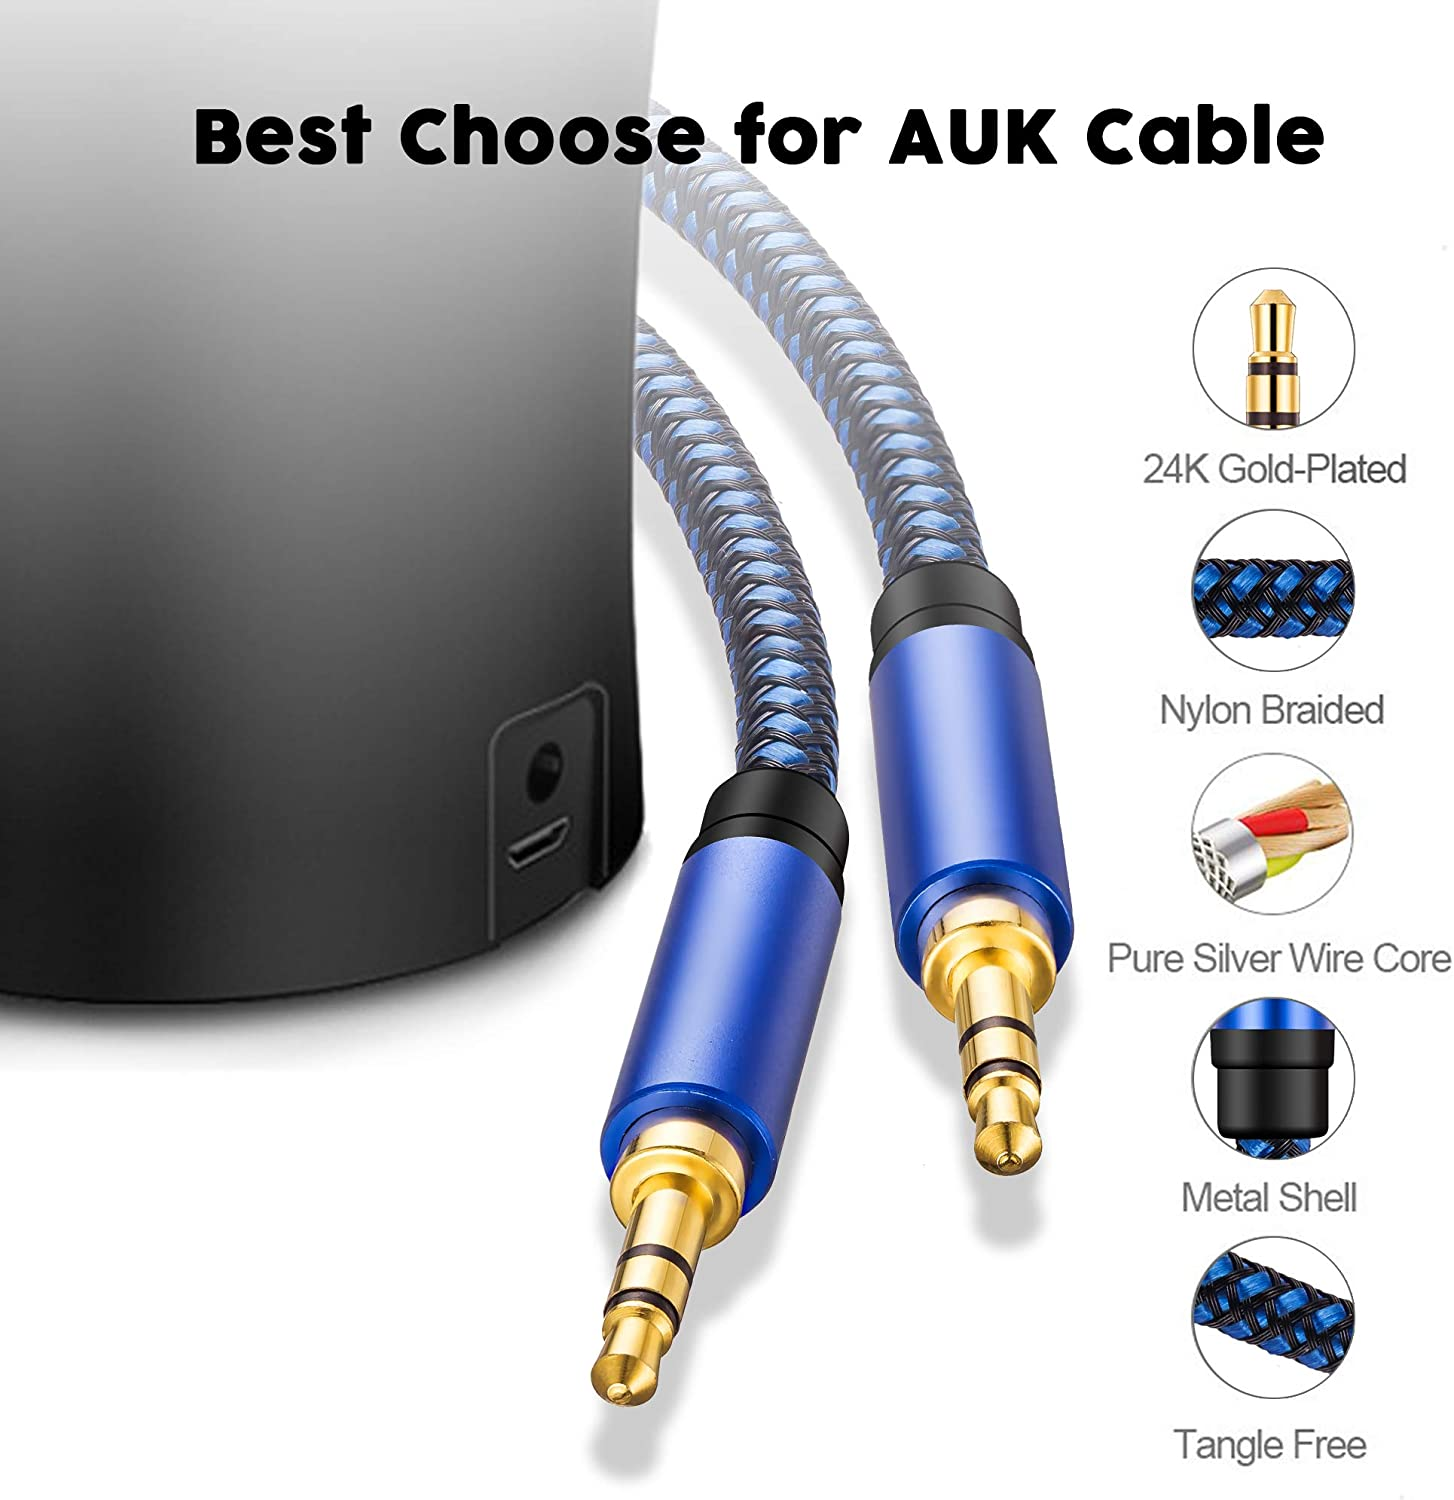 Home Car Stereo System and More iPhone Smartphone Uperatre 3.5mm Audio Cable Professional HiFi Male to Male Braided Stereo Aux Cord Wire for Headphones Audio Cable 10ft iPod Speaker iPad